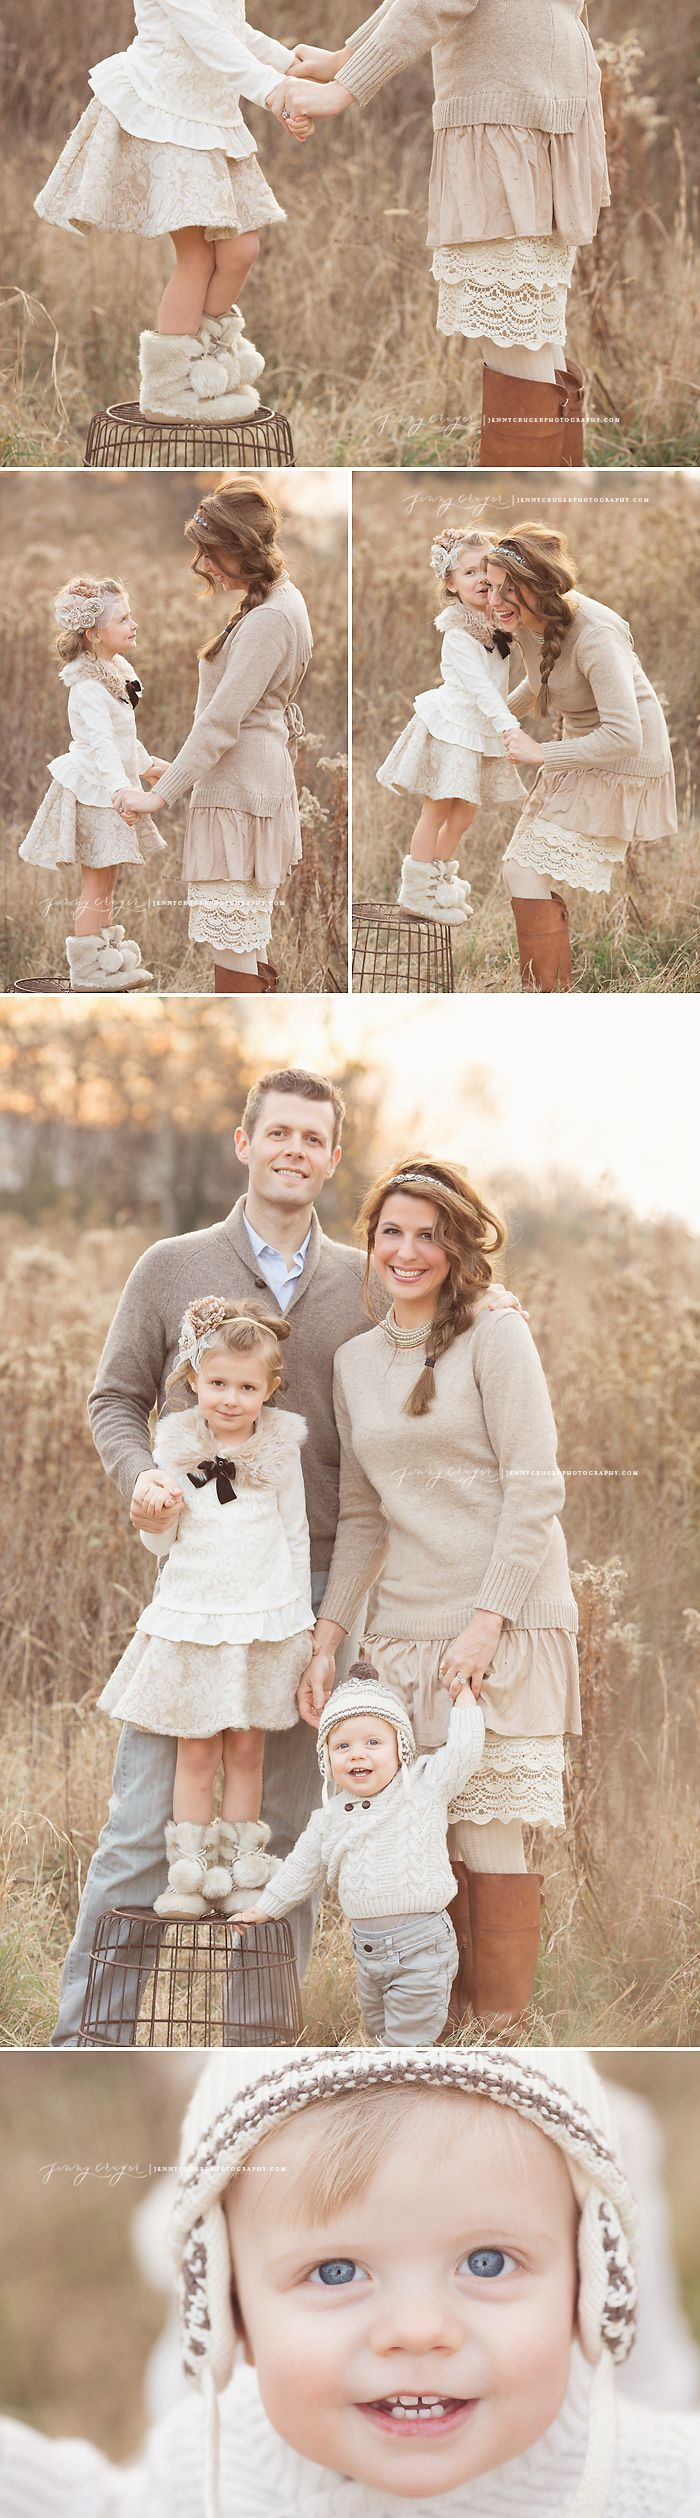 Beautiful family session by Jennie Cruger Photography! Love the family's…